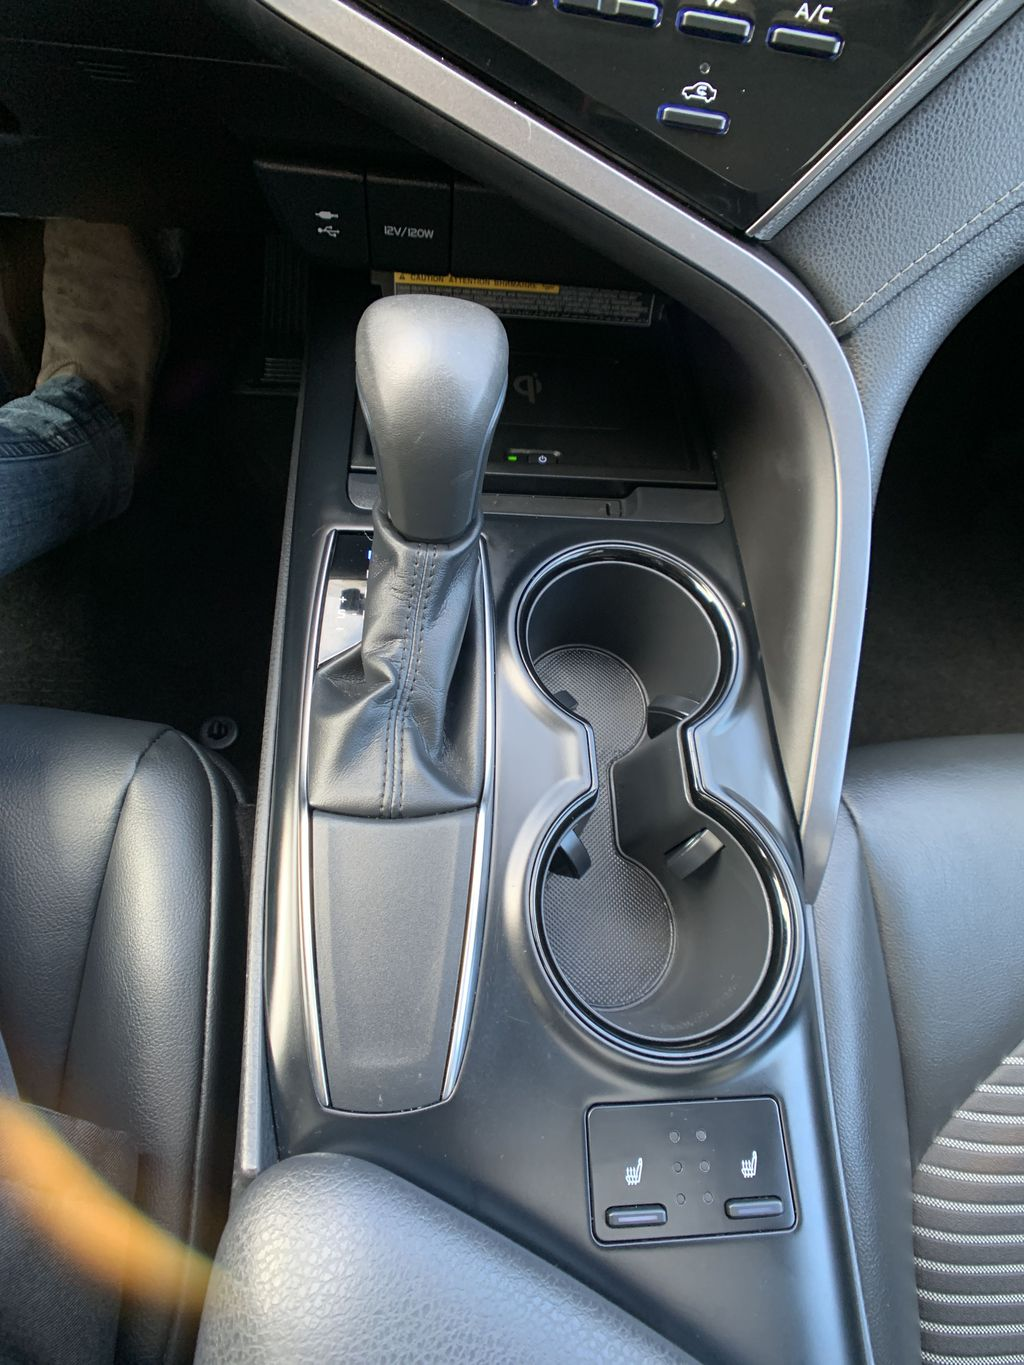 White 2019 Toyota Camry STOCK NOT FOUND Strng Wheel/Dash Photo: Frm Rear in Brampton ON